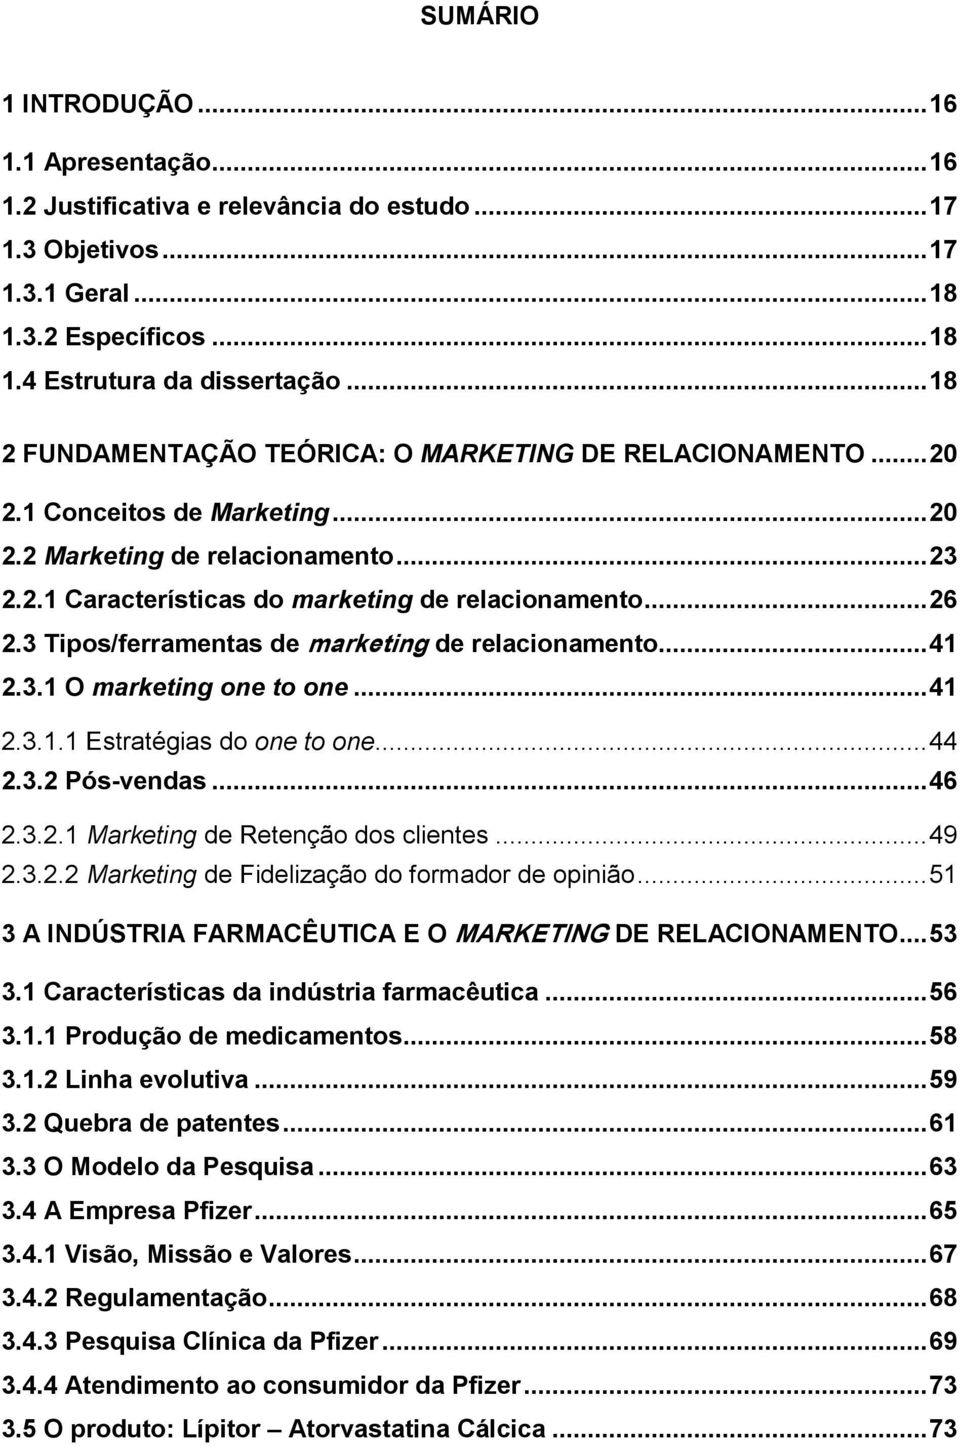 3 Tipos/ferramentas de marketing de relacionamento... 41 2.3.1 O marketing one to one... 41 2.3.1.1 Estratégias do one to one... 44 2.3.2 Pós-vendas... 46 2.3.2.1 Marketing de Retenção dos clientes.